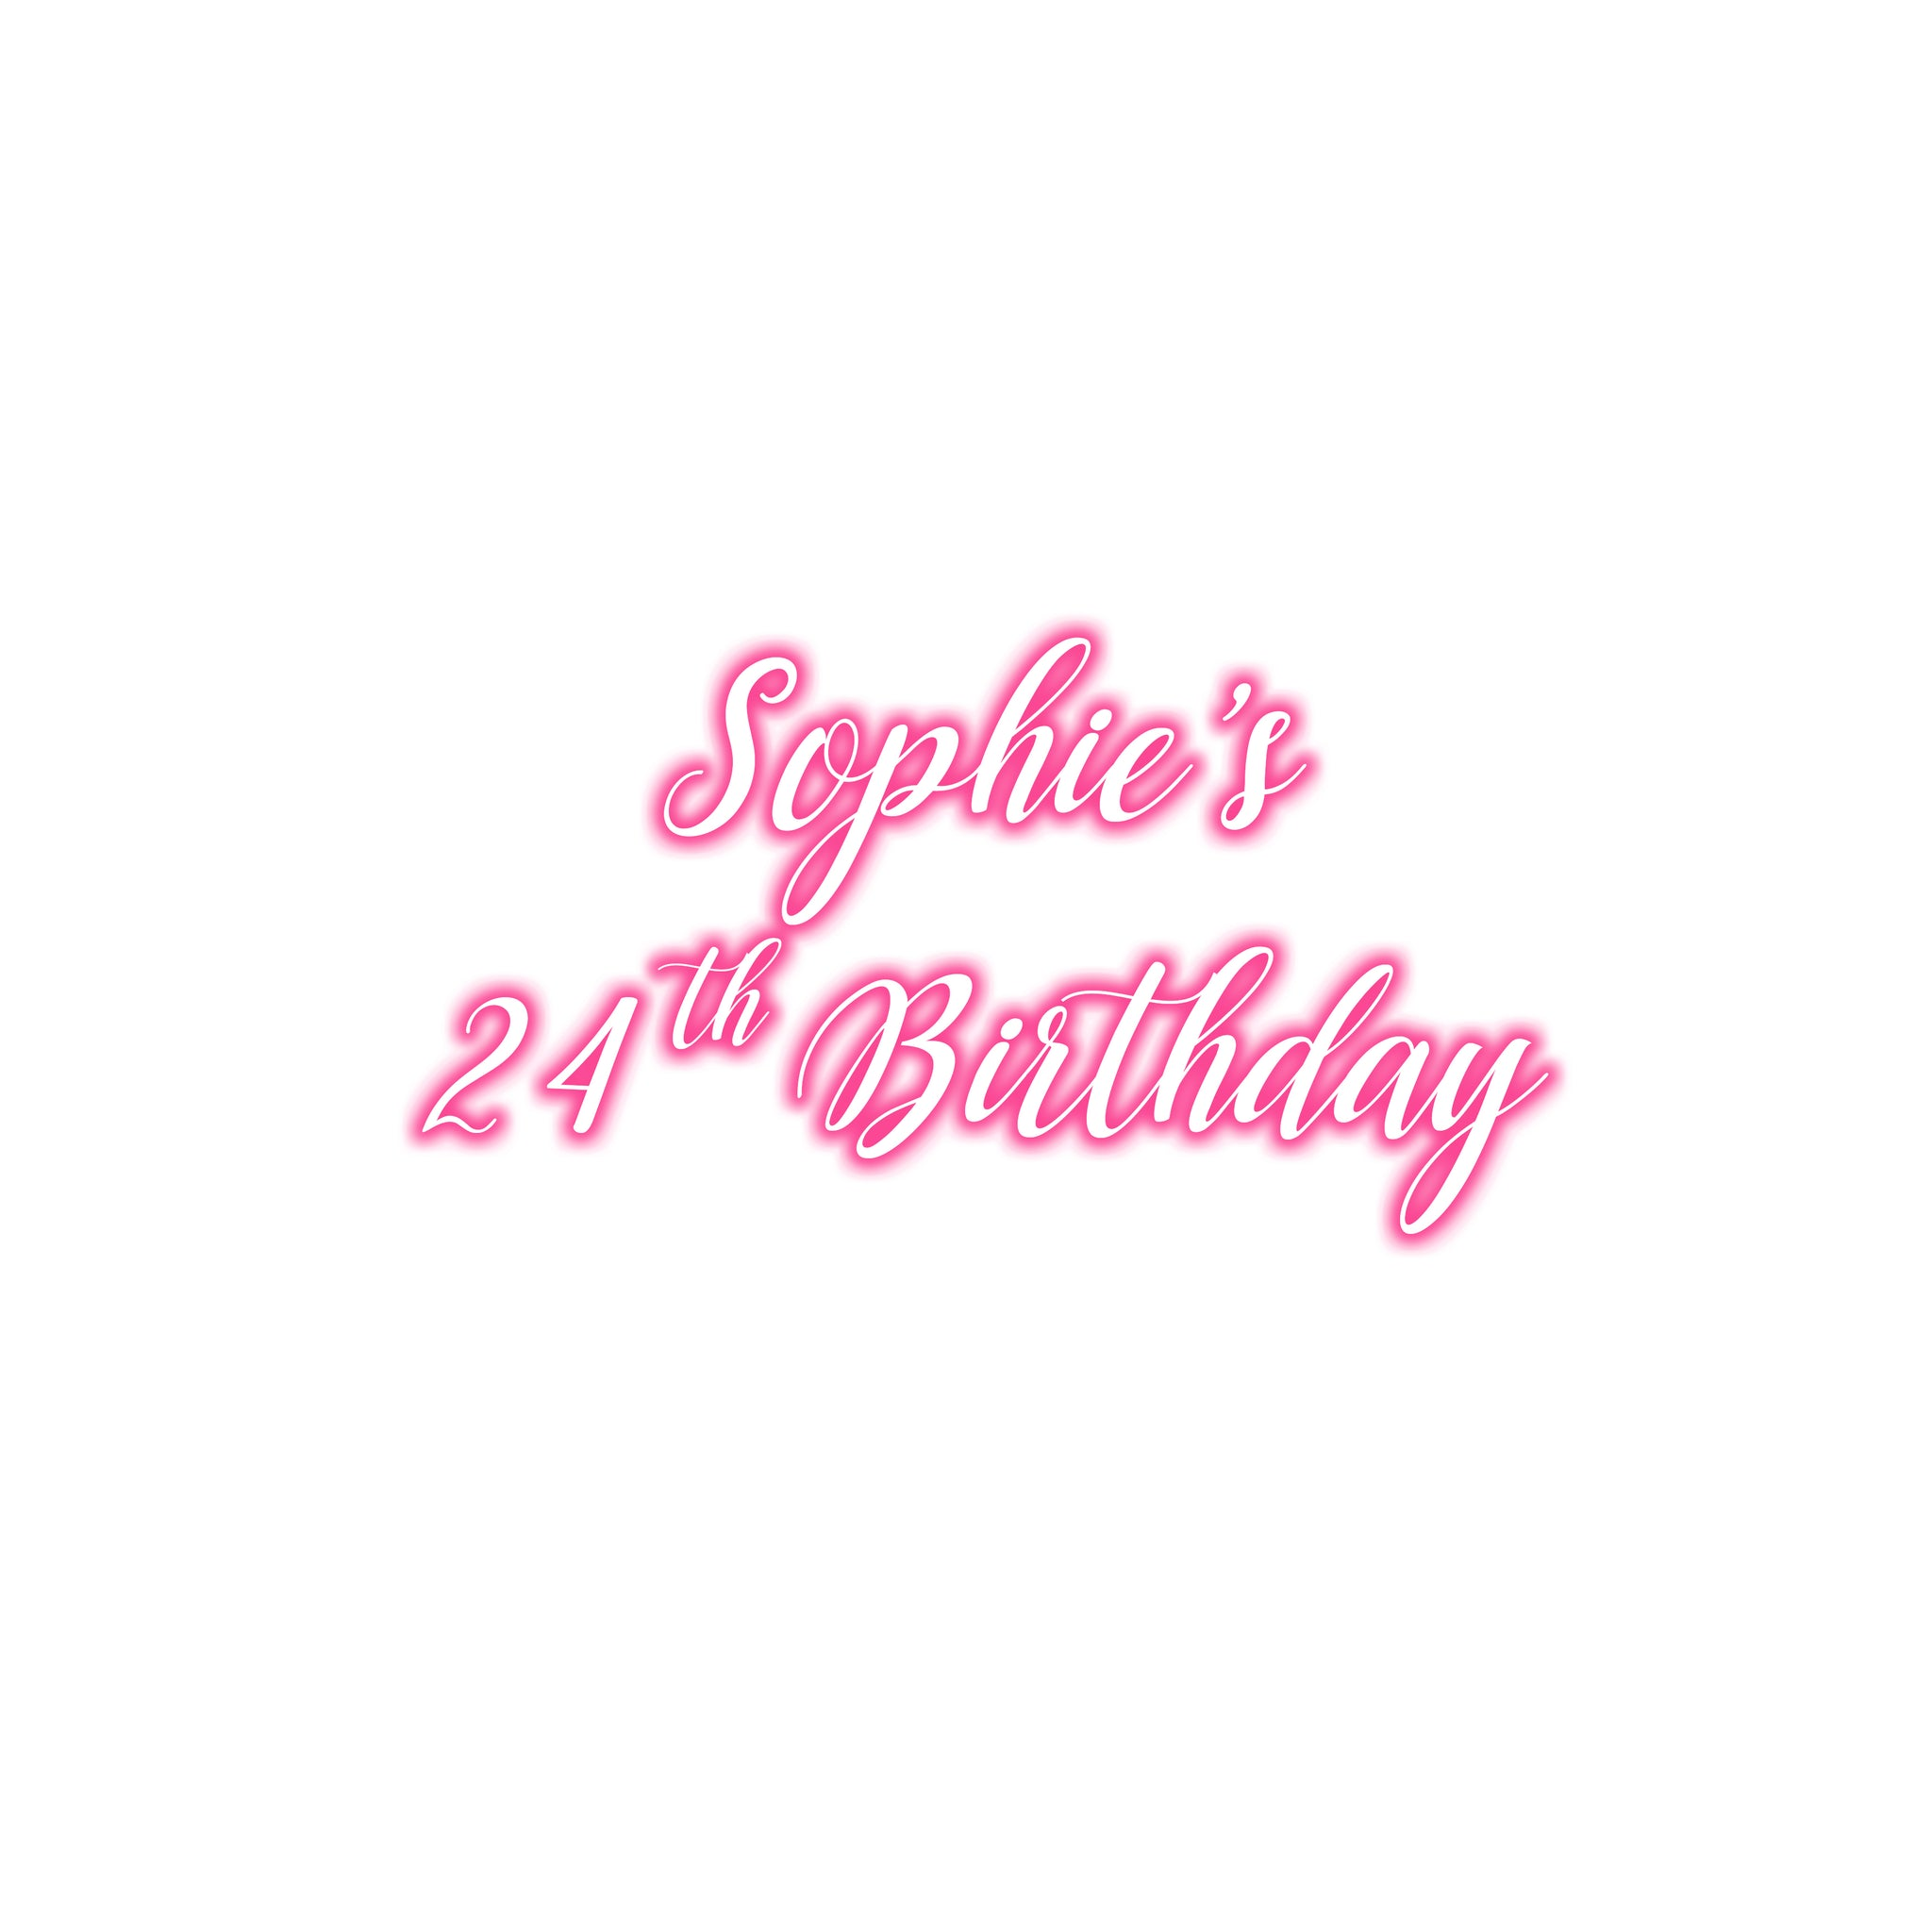 Birthday neon - custom digital sticker